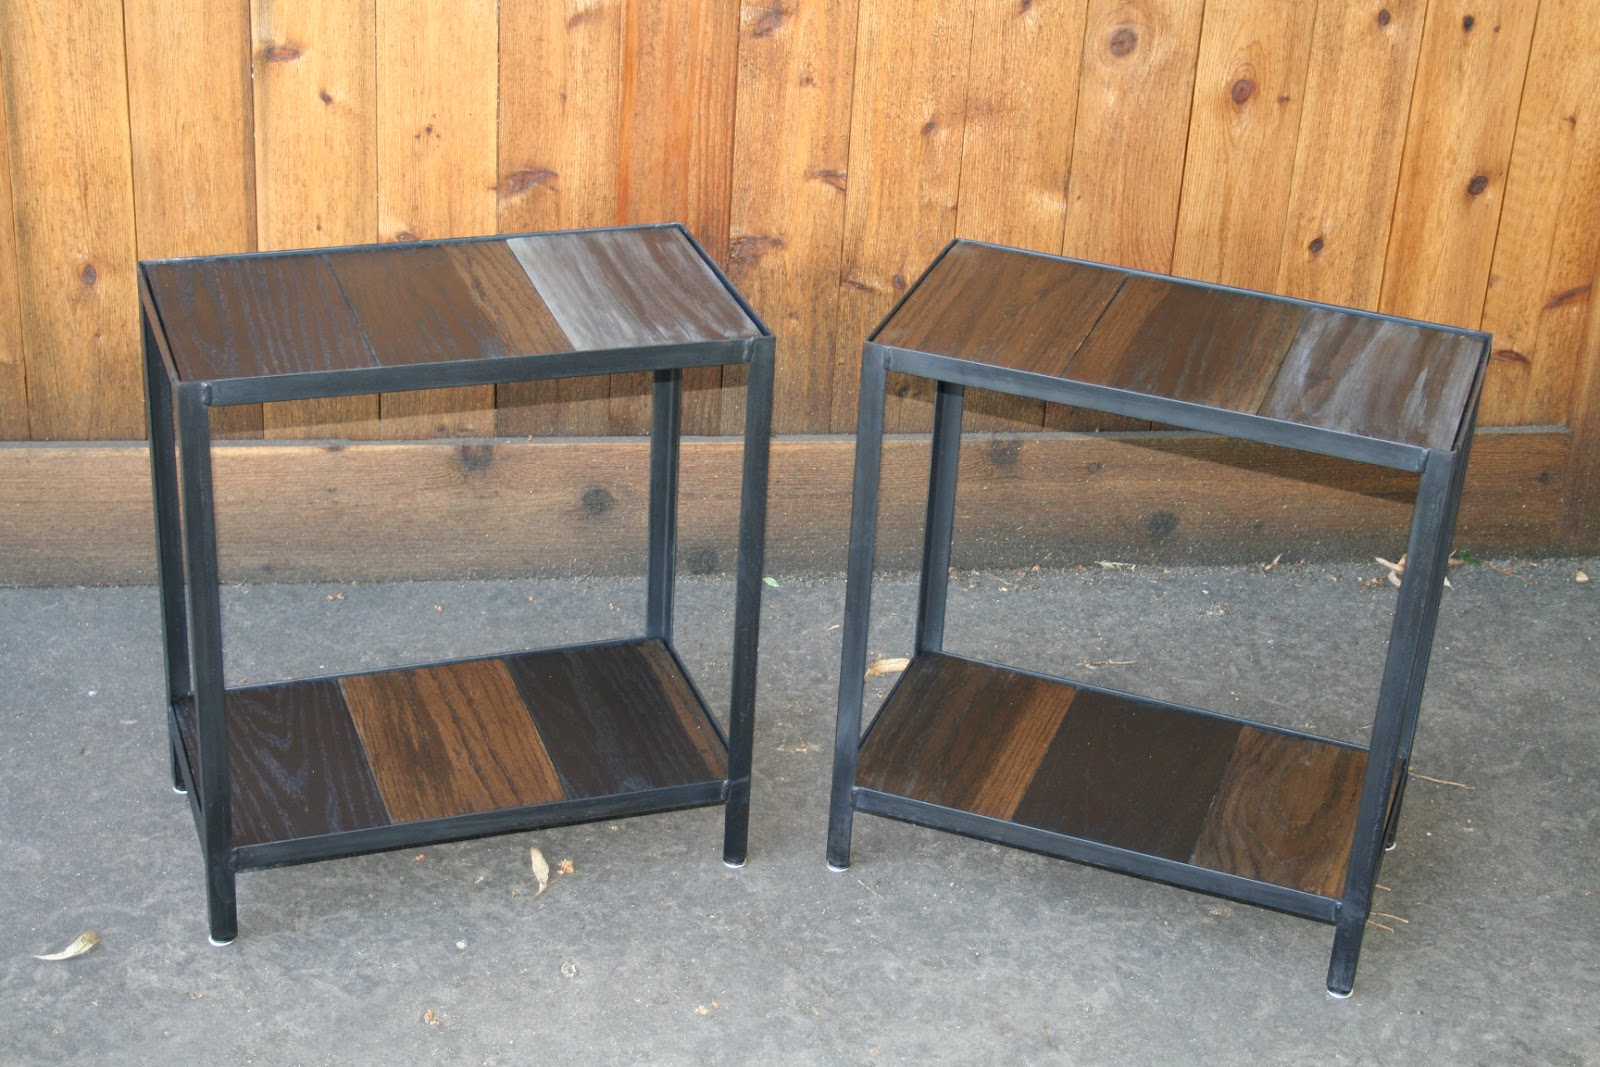 Real Industrial Edge Furniture Llc Industrial End Table